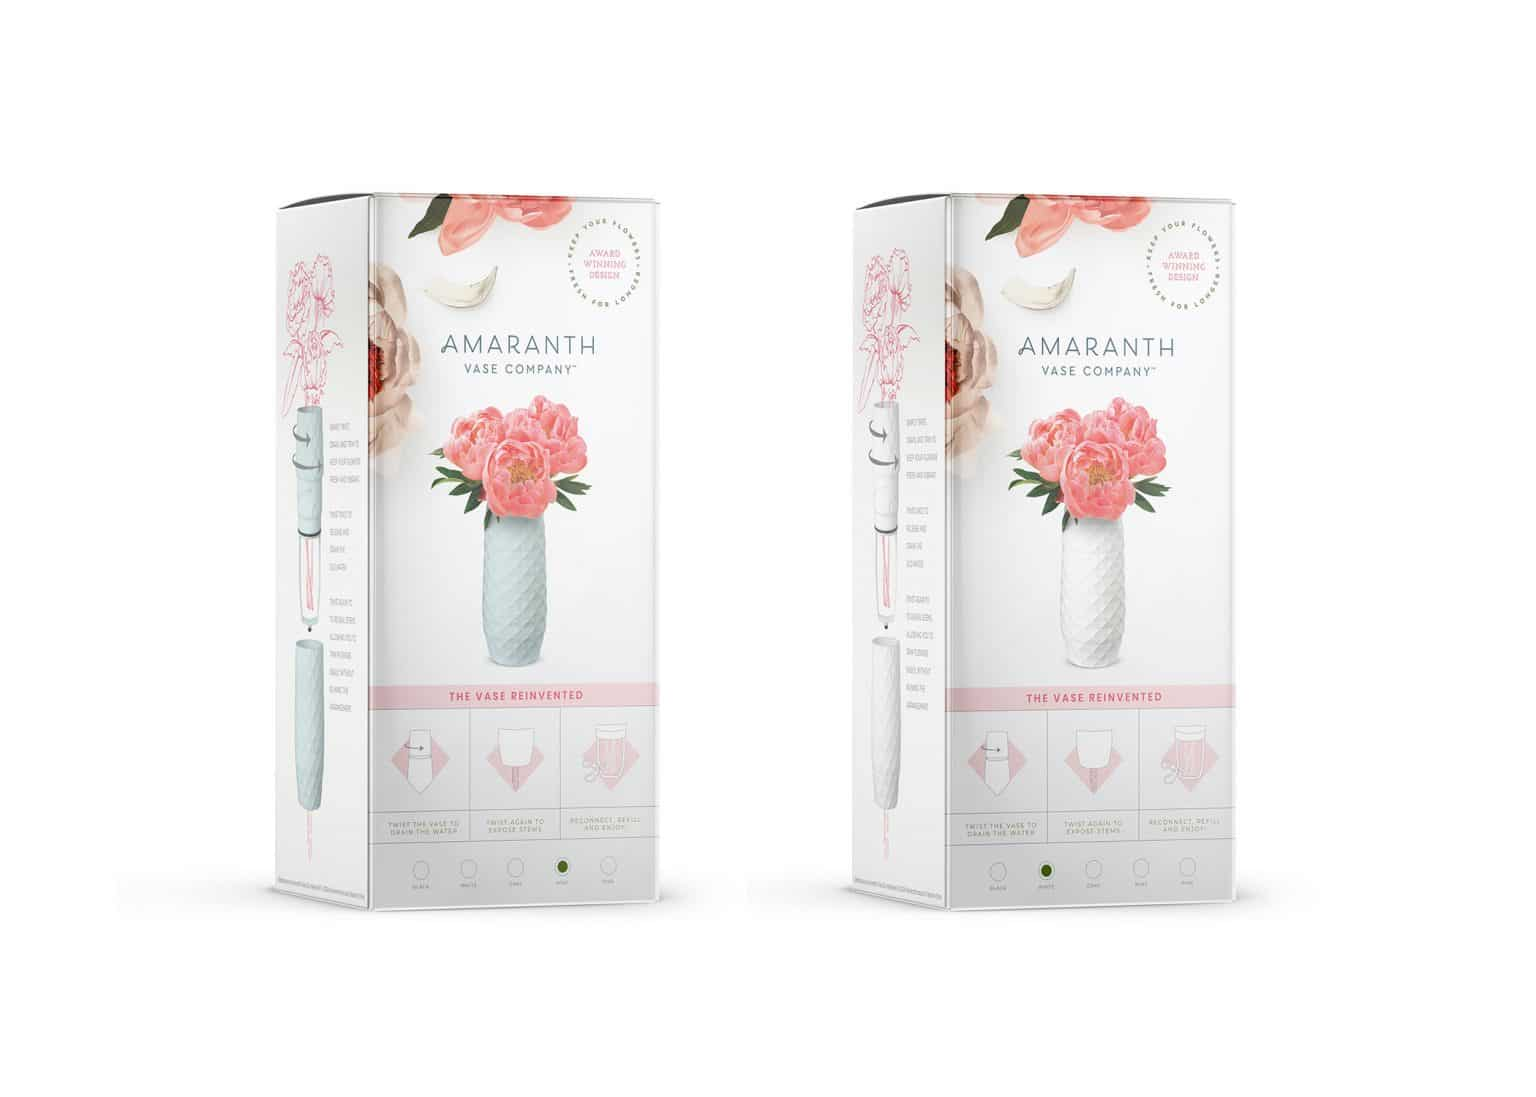 Amaranth Vase product award winning package design box showing pink vase and easy to use instructions.